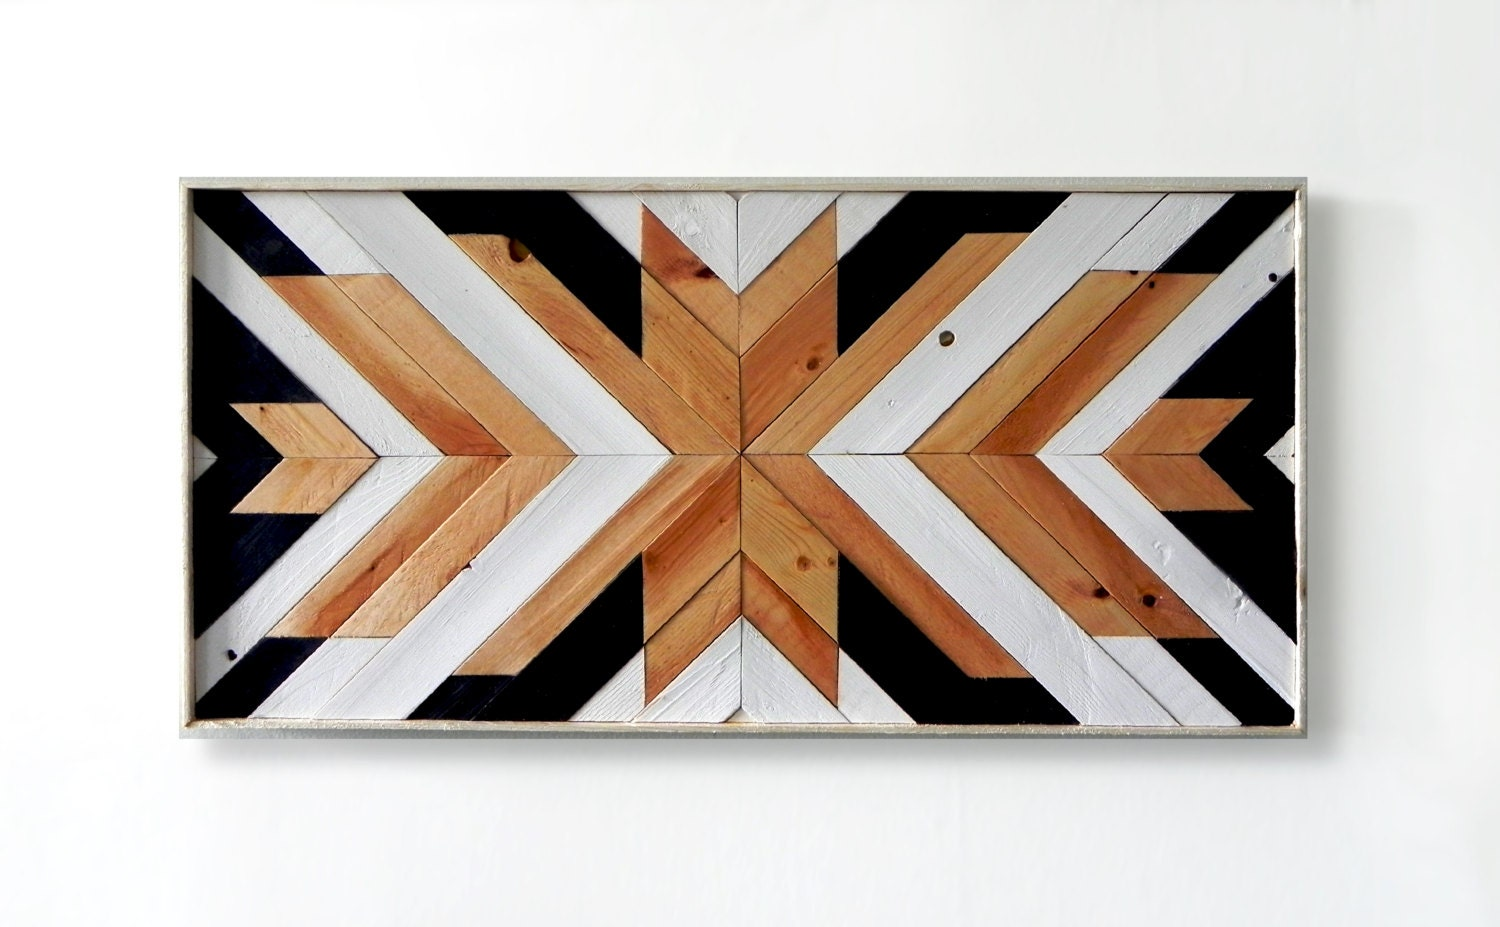 Wood Wall Art ~ Reclaimed Wood Wall Art ~ Wall Art ~ Wooden Wall Art ~  Geometric Wood Wall Art ~ Wooden Artwork ~ Wood Wall Decor